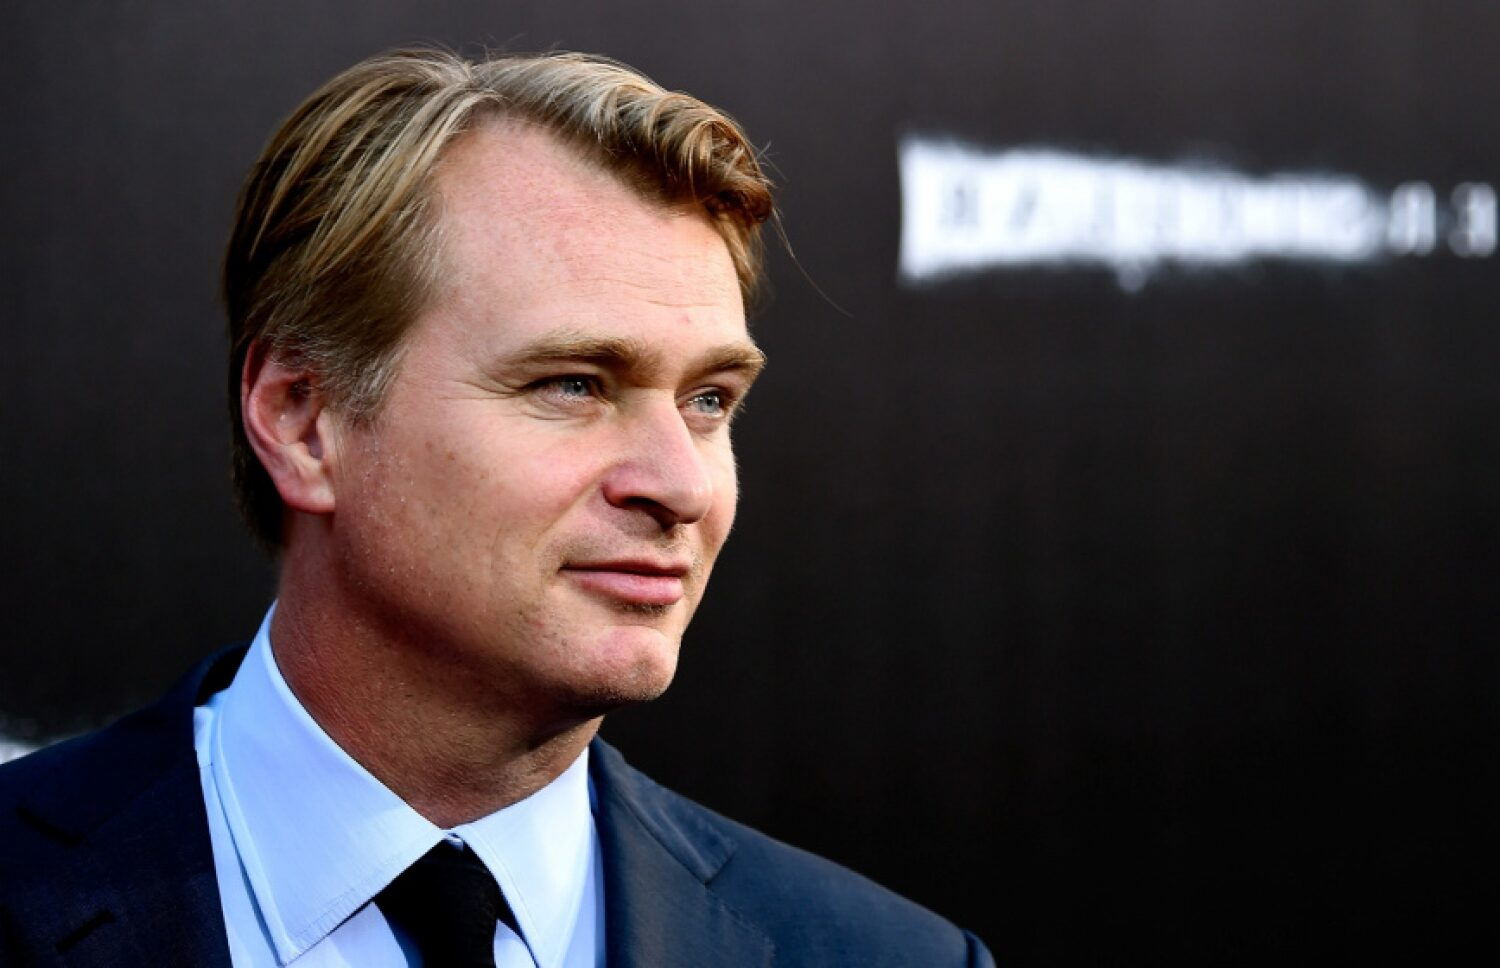 Nolan wants to adapt his movies to video games